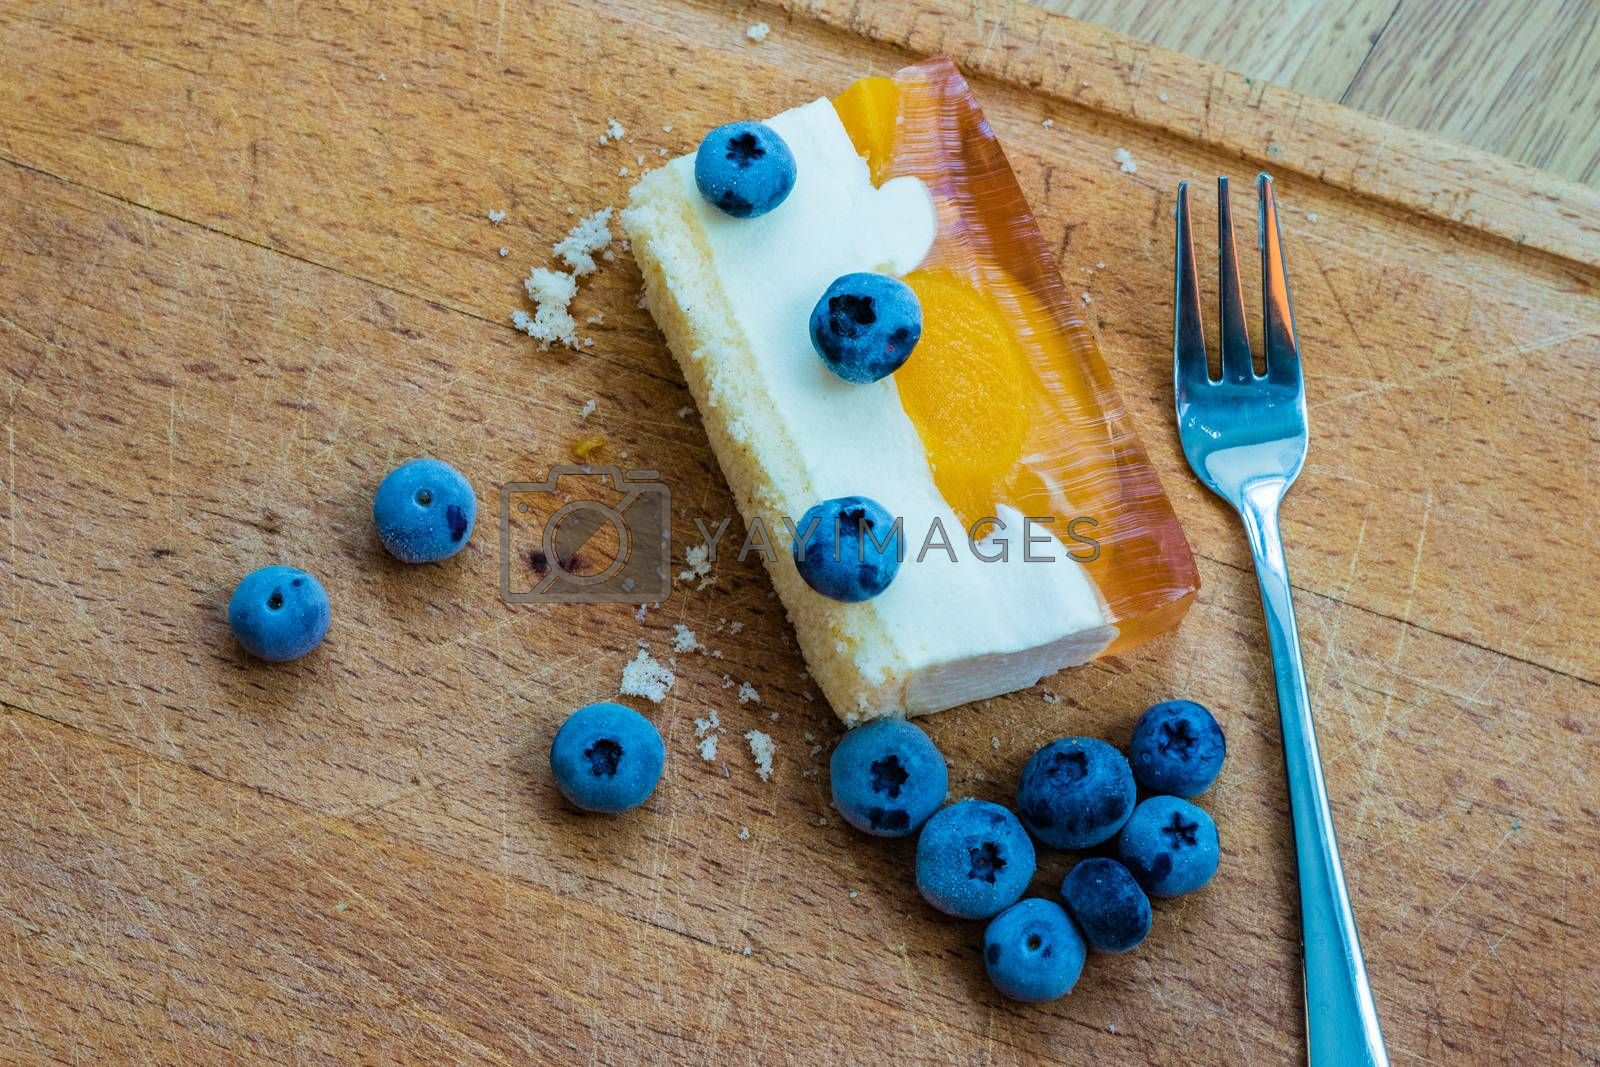 Delicious and sweet cake with blueberries. Sunny dessert on the kitchen table. Light background.